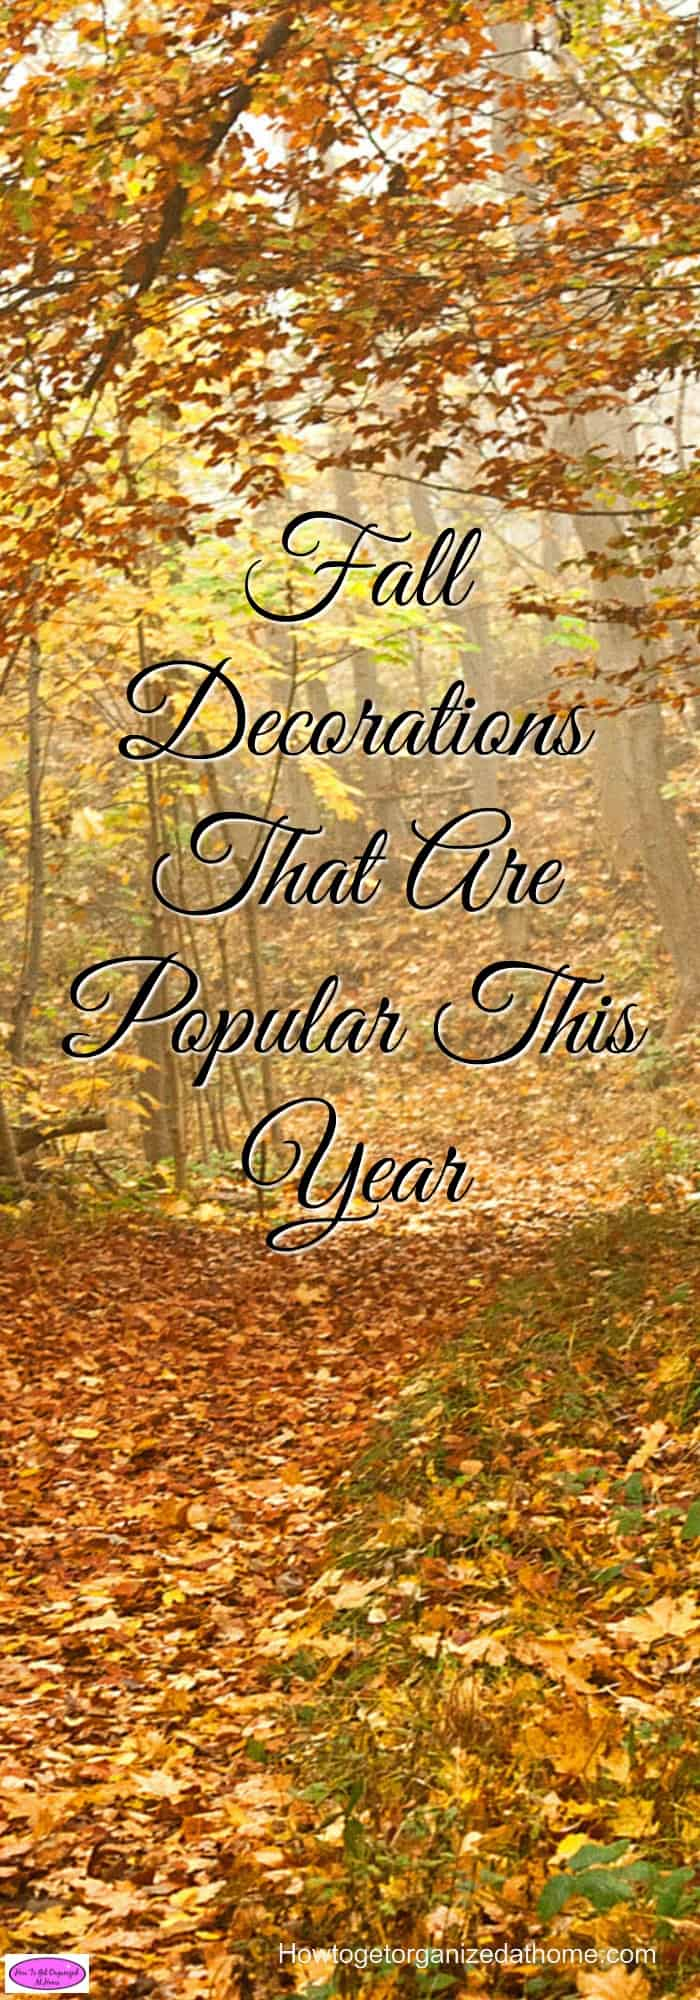 With the changing seasons comes the possibility of changing to fall decorations. If you are looking for inspiration check out this article.